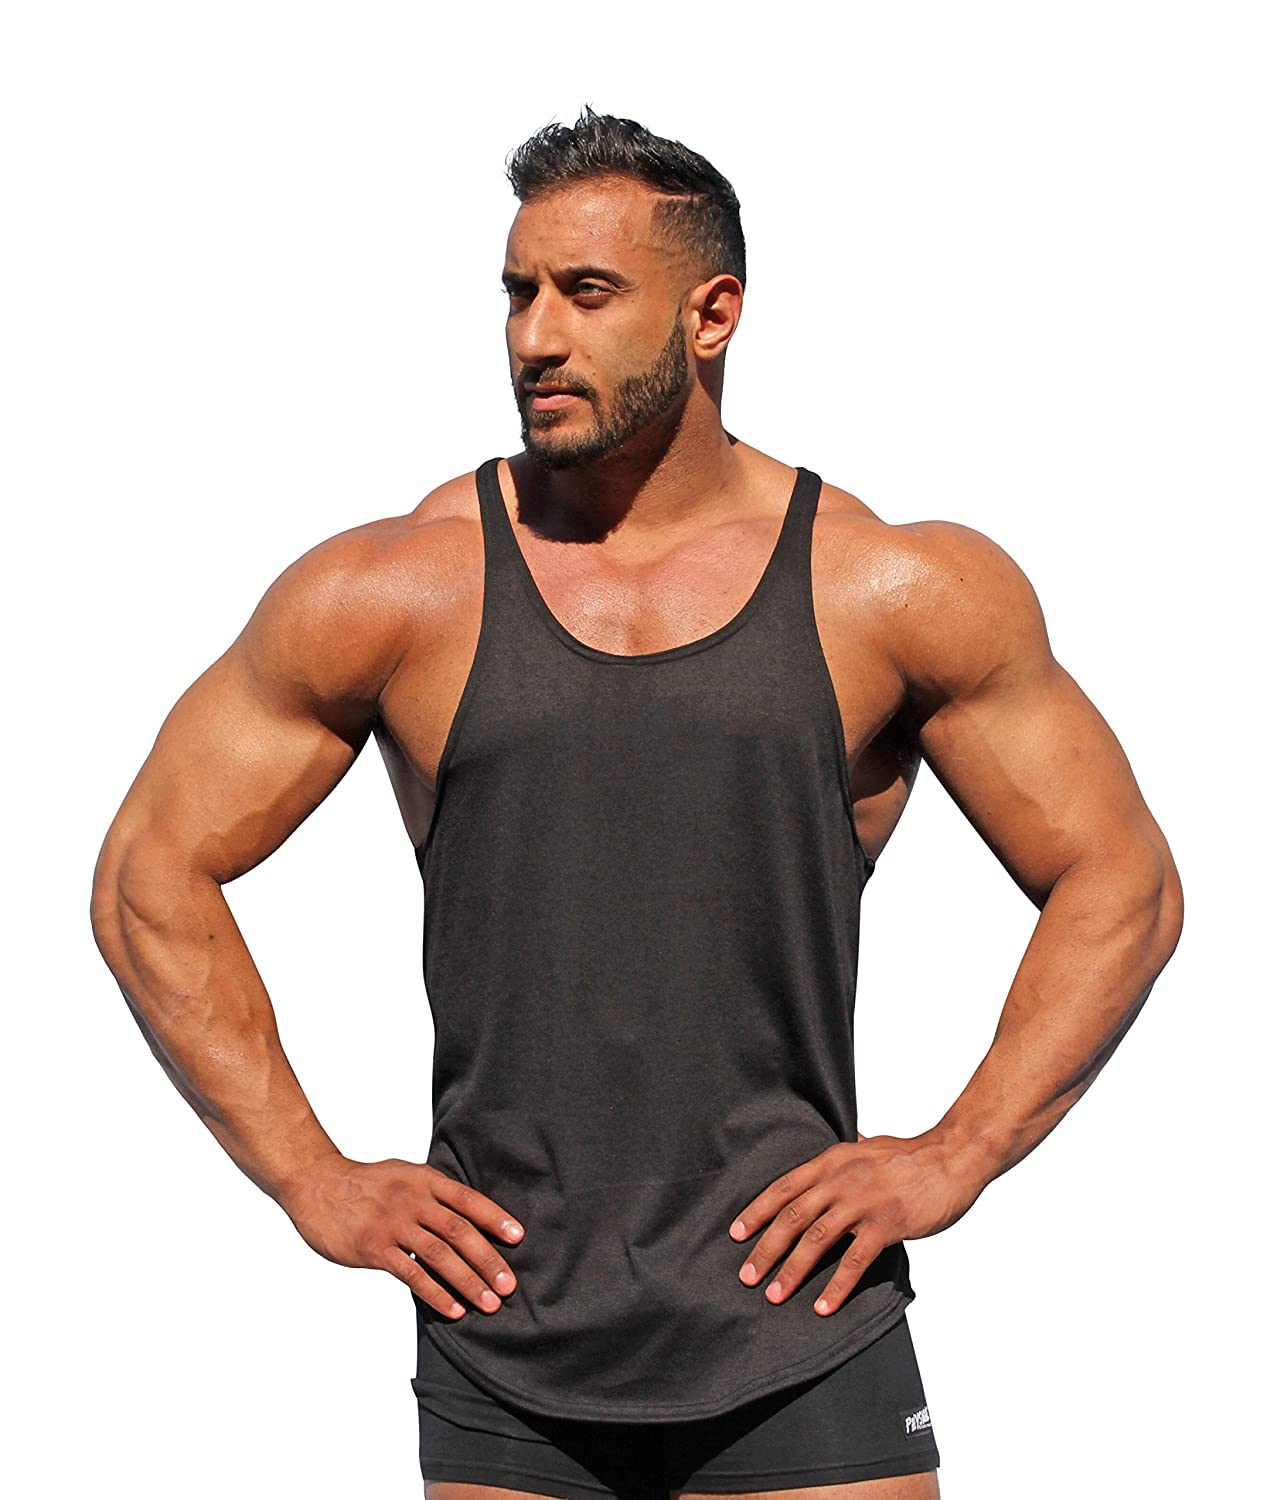 c07020d8d97d05 Physique Bodyware Men s Y Back Stringer Tank Tops for Bodybuilders. 100%  designed   manufactured in America for over 27 years